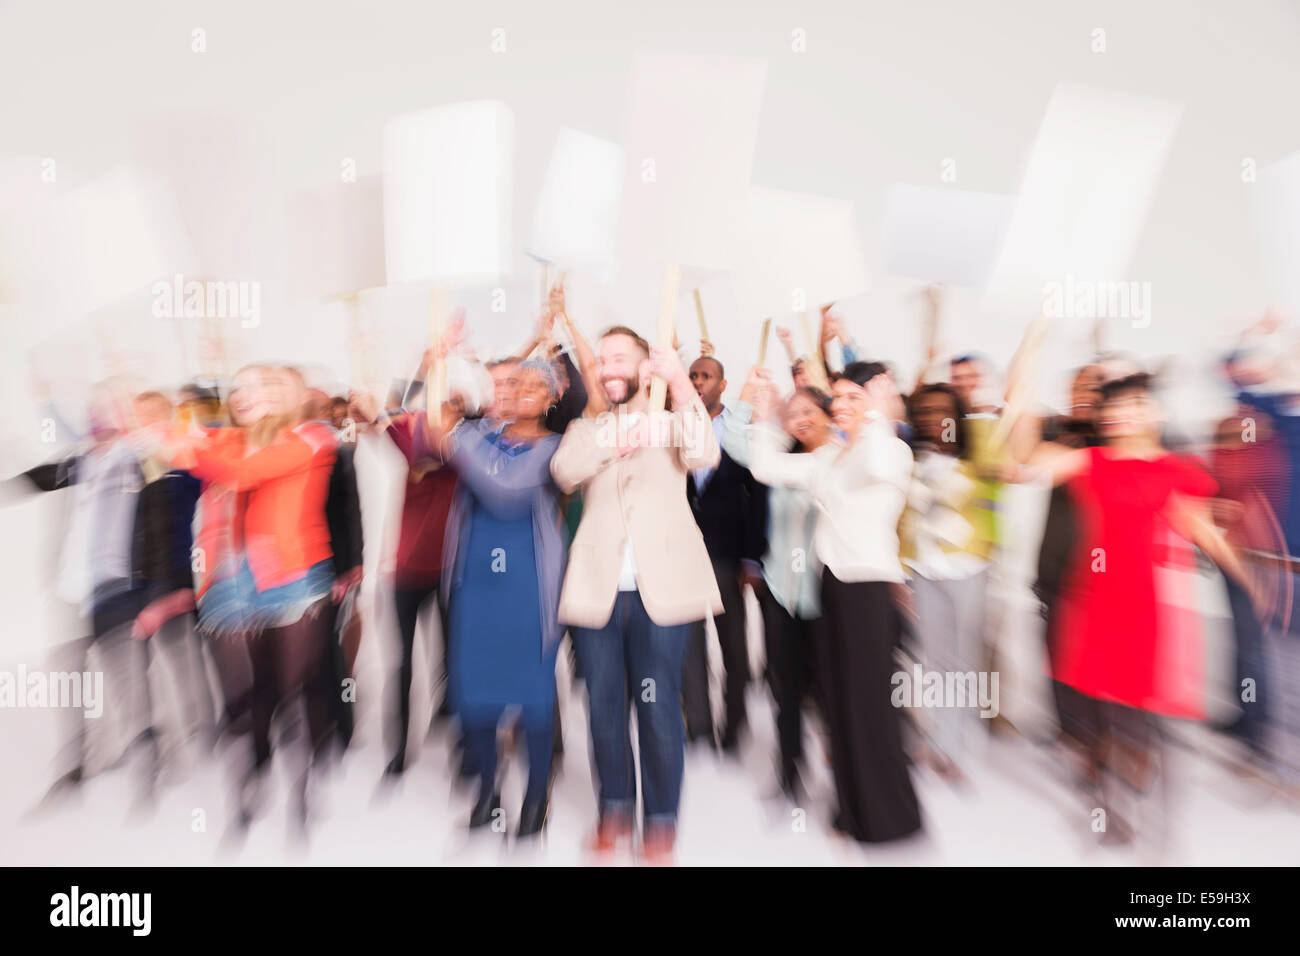 Protesters waving picket signs - Stock Image